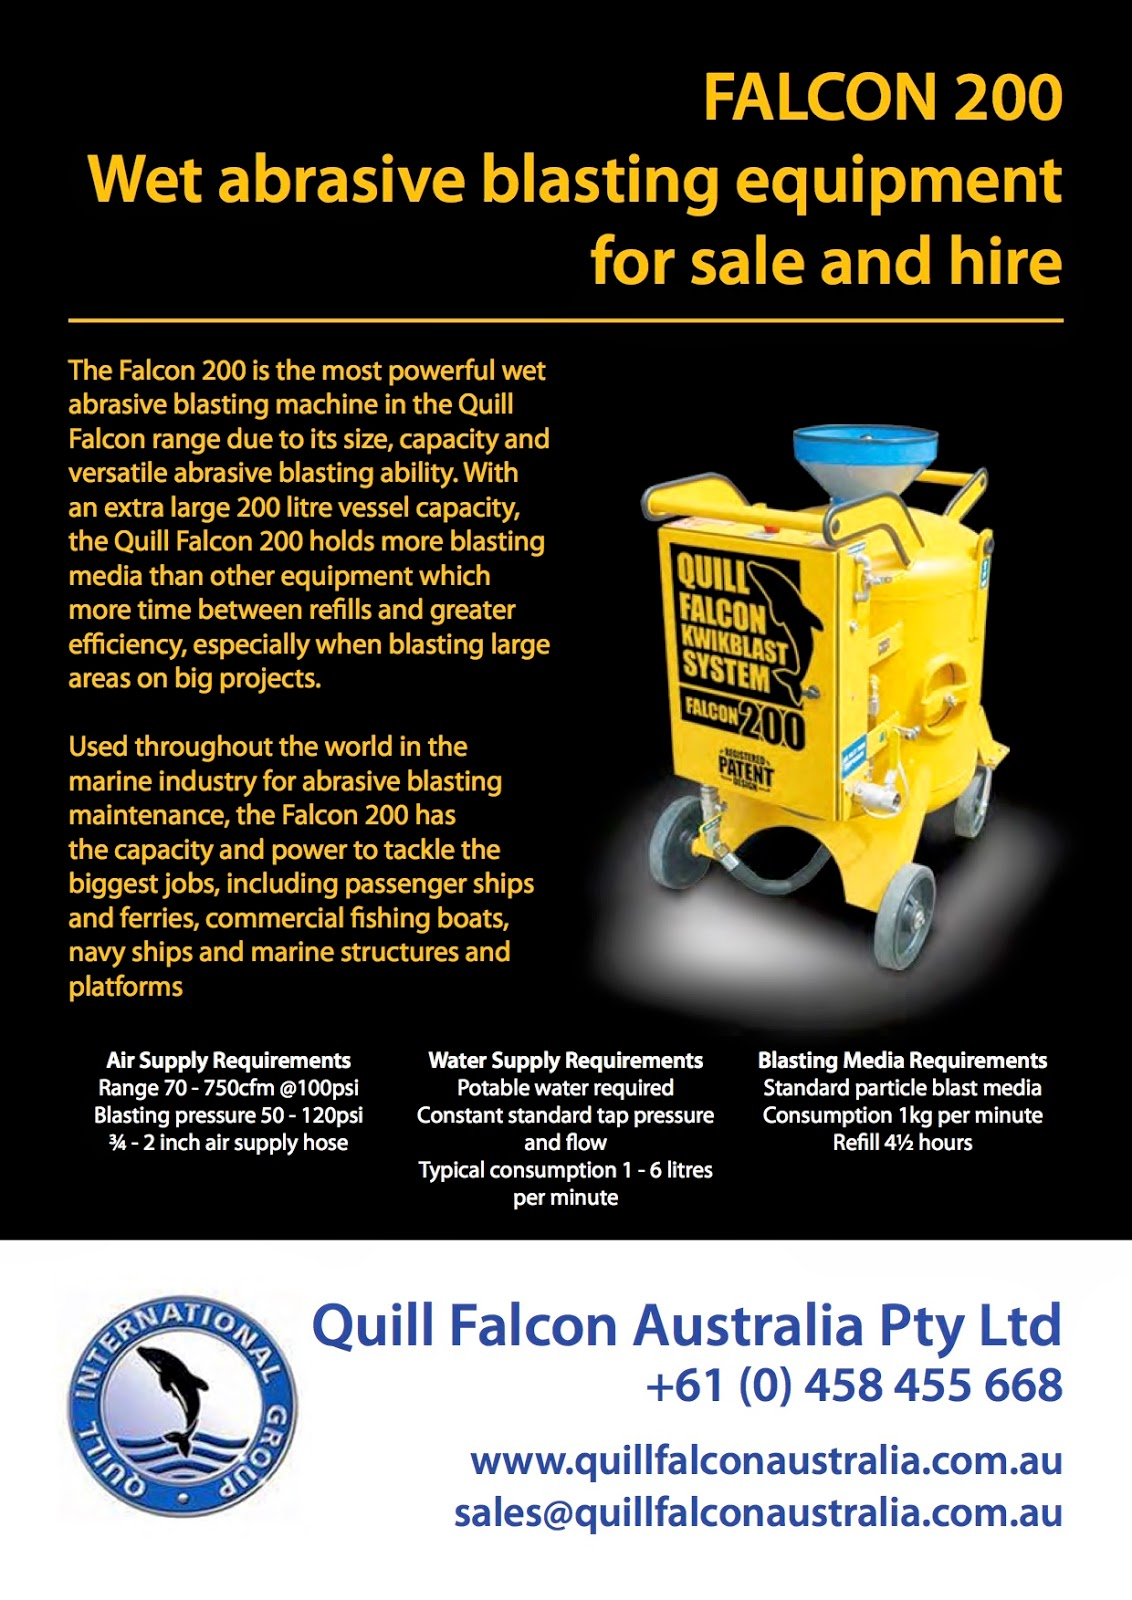 Wet abrasive blasting equipment for sale and hire in Australia, New Zealand, Vietnam and the Asia Pacific